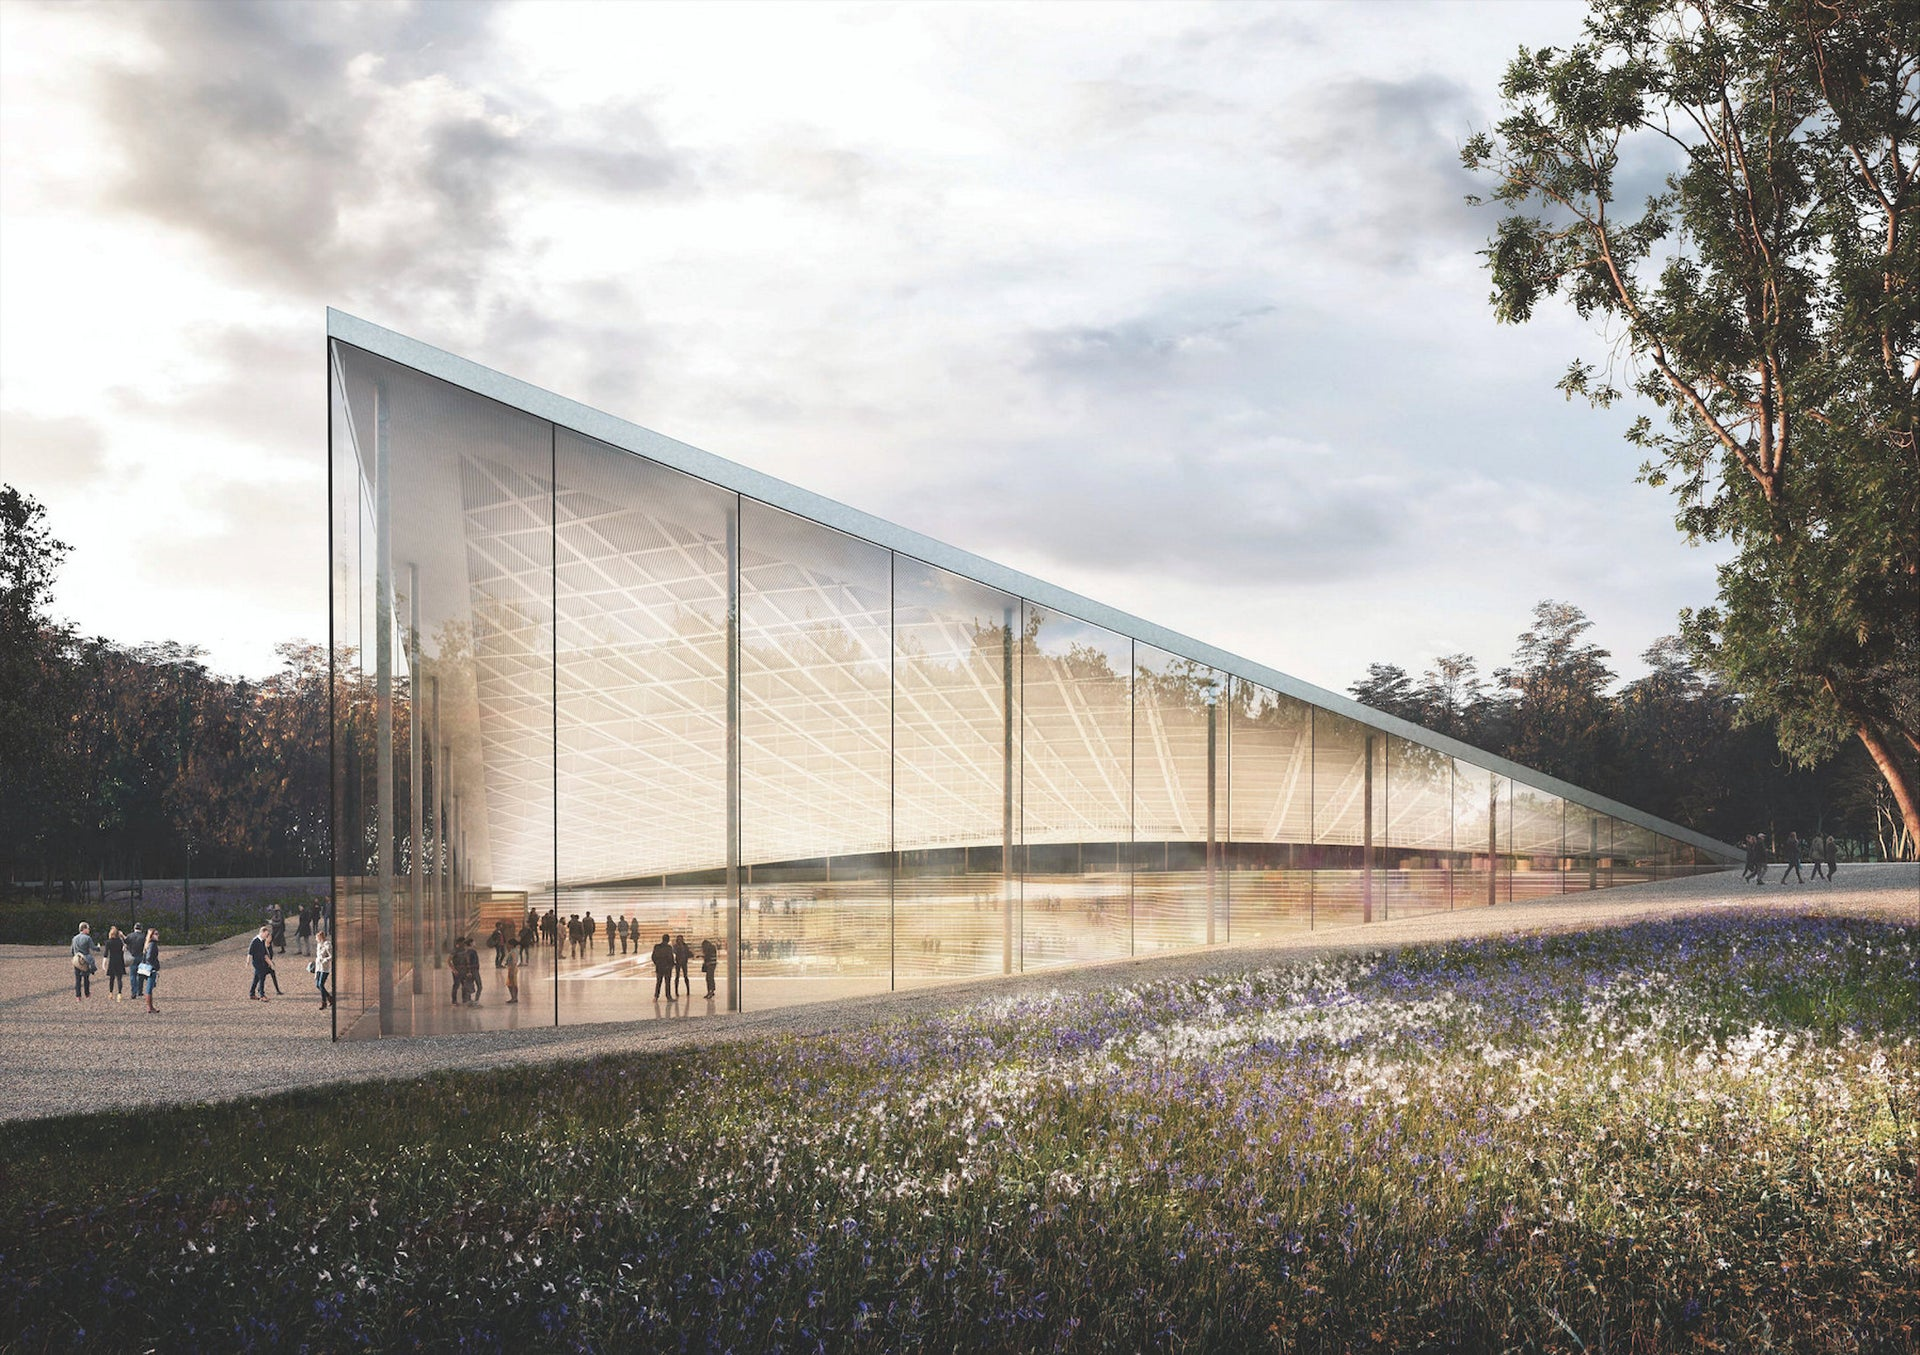 A simulation of the proposed Babyn Yar Holocaust Memorial Center. The erection of a memorial at Babi Yar was debated in Ukraine for years.